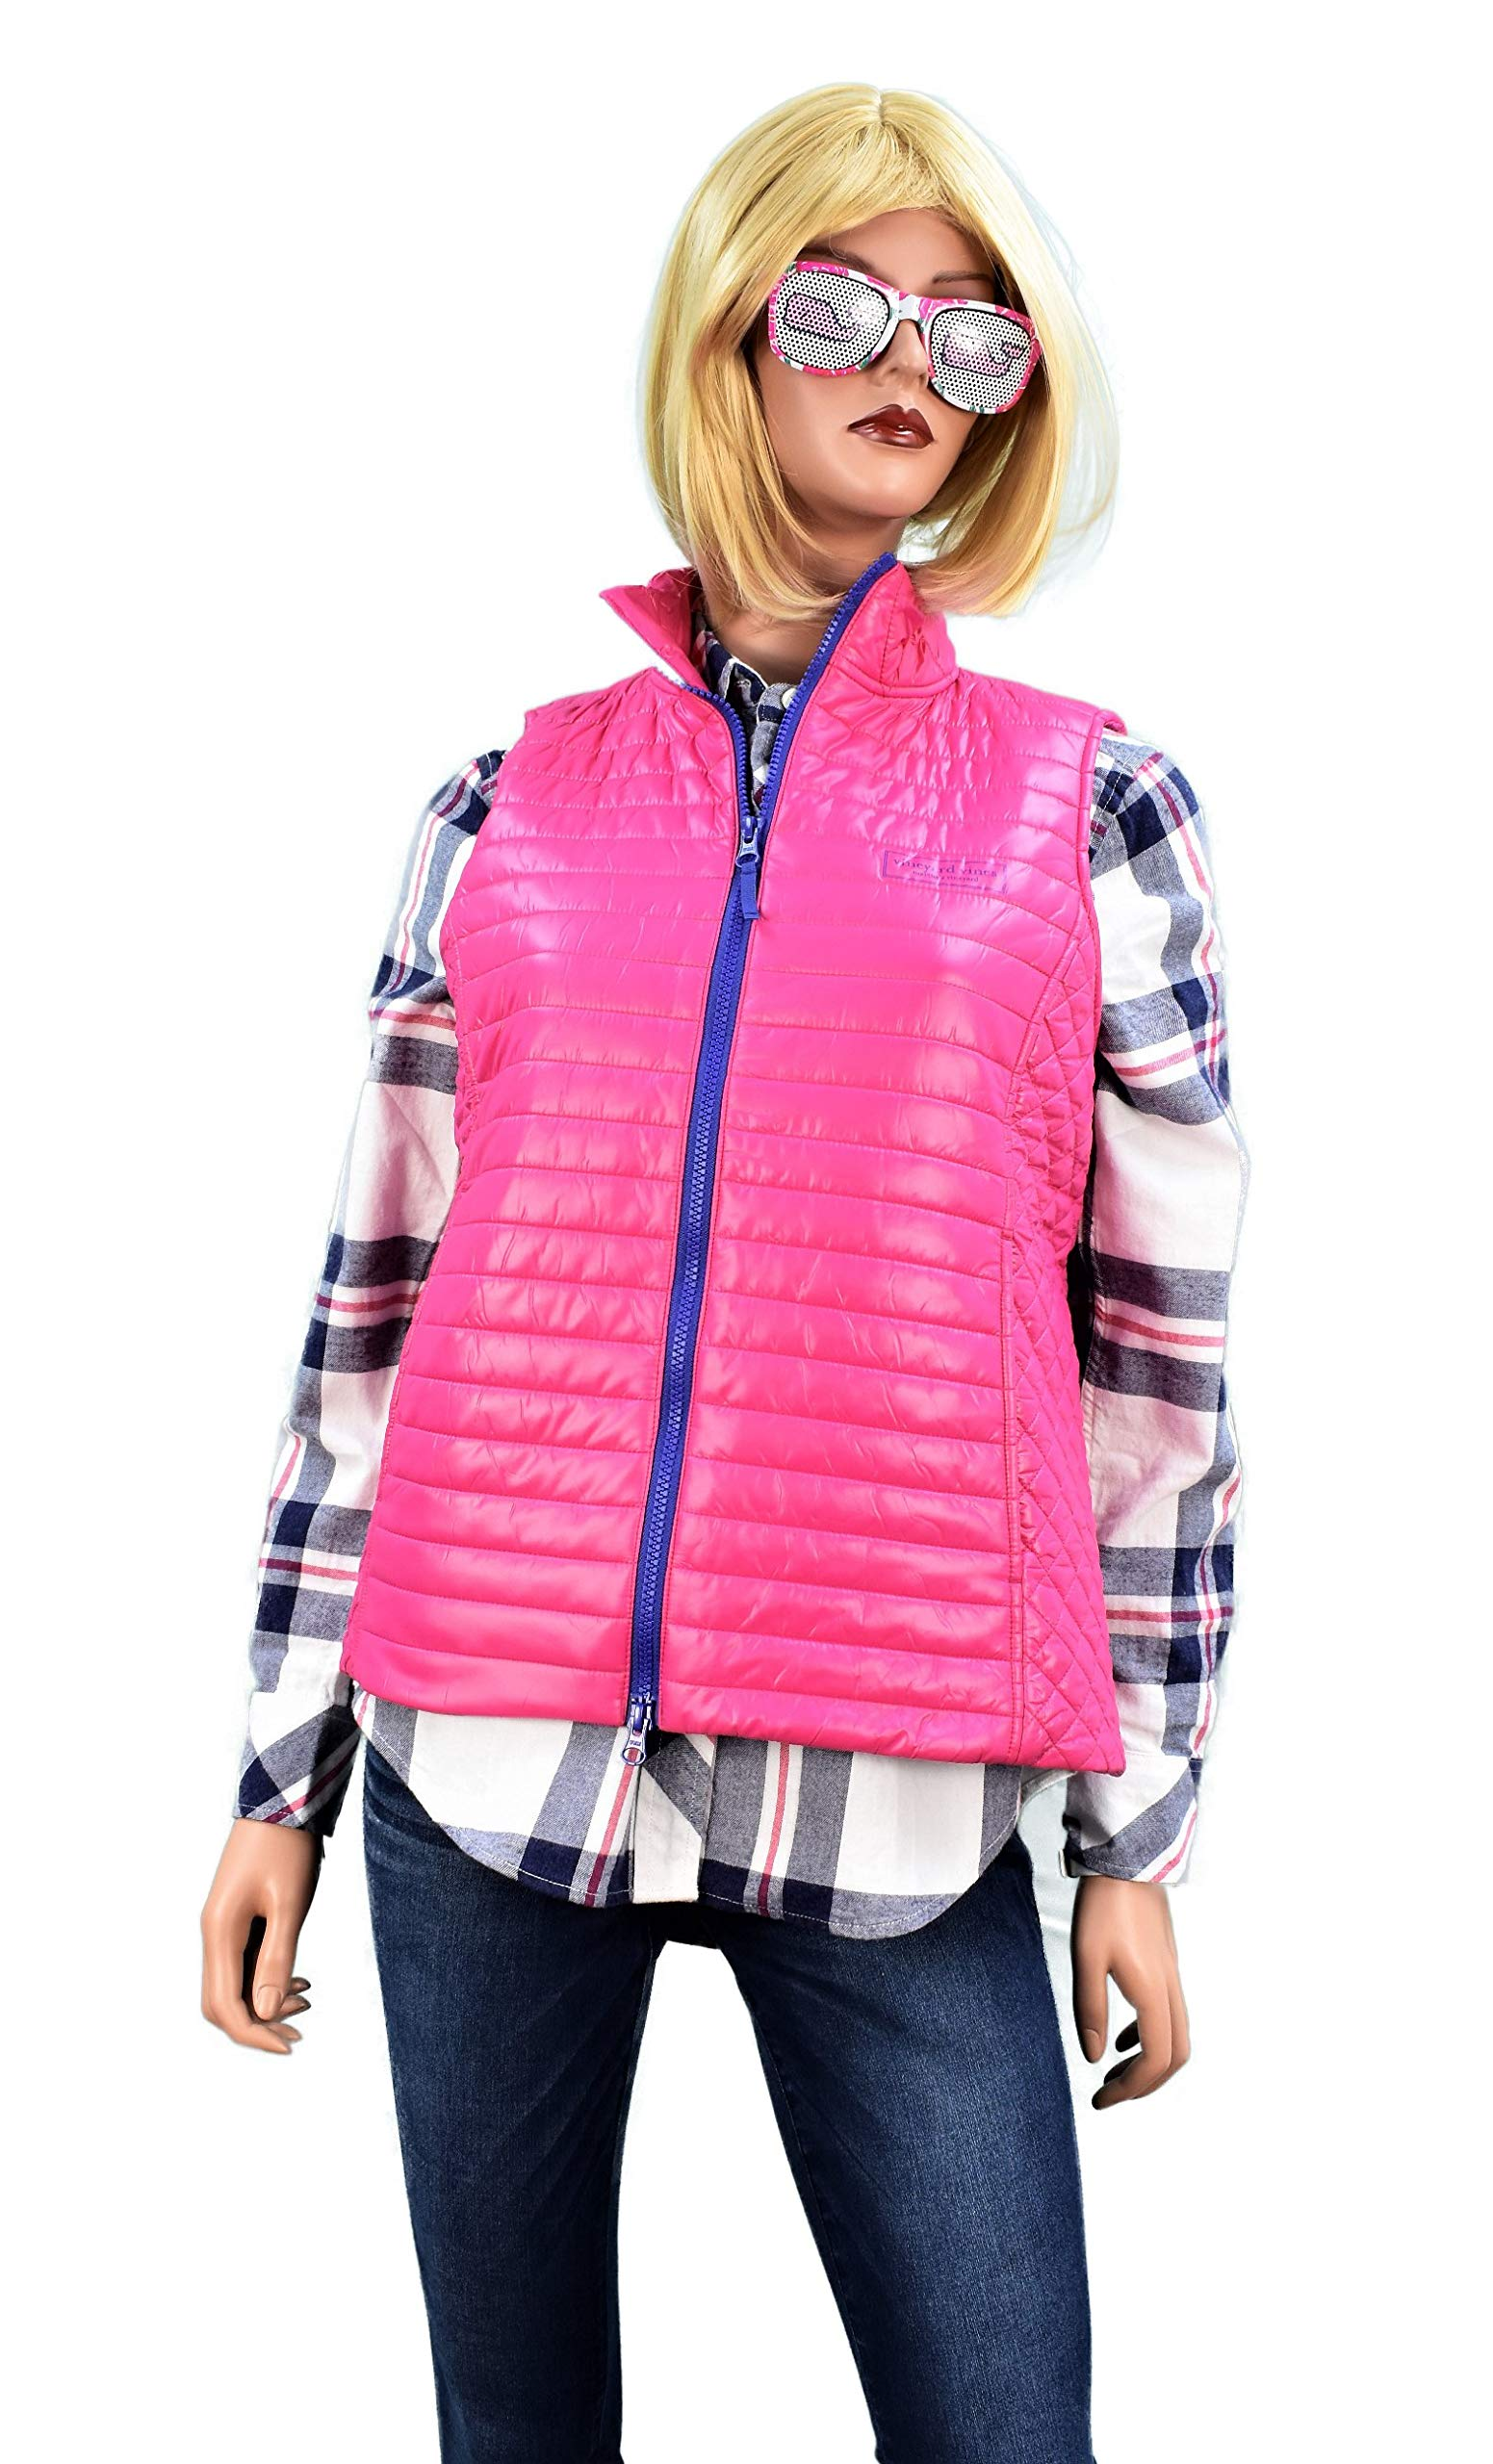 Vineyard Vines Womens Performance Puffer Vest Pink (XS)